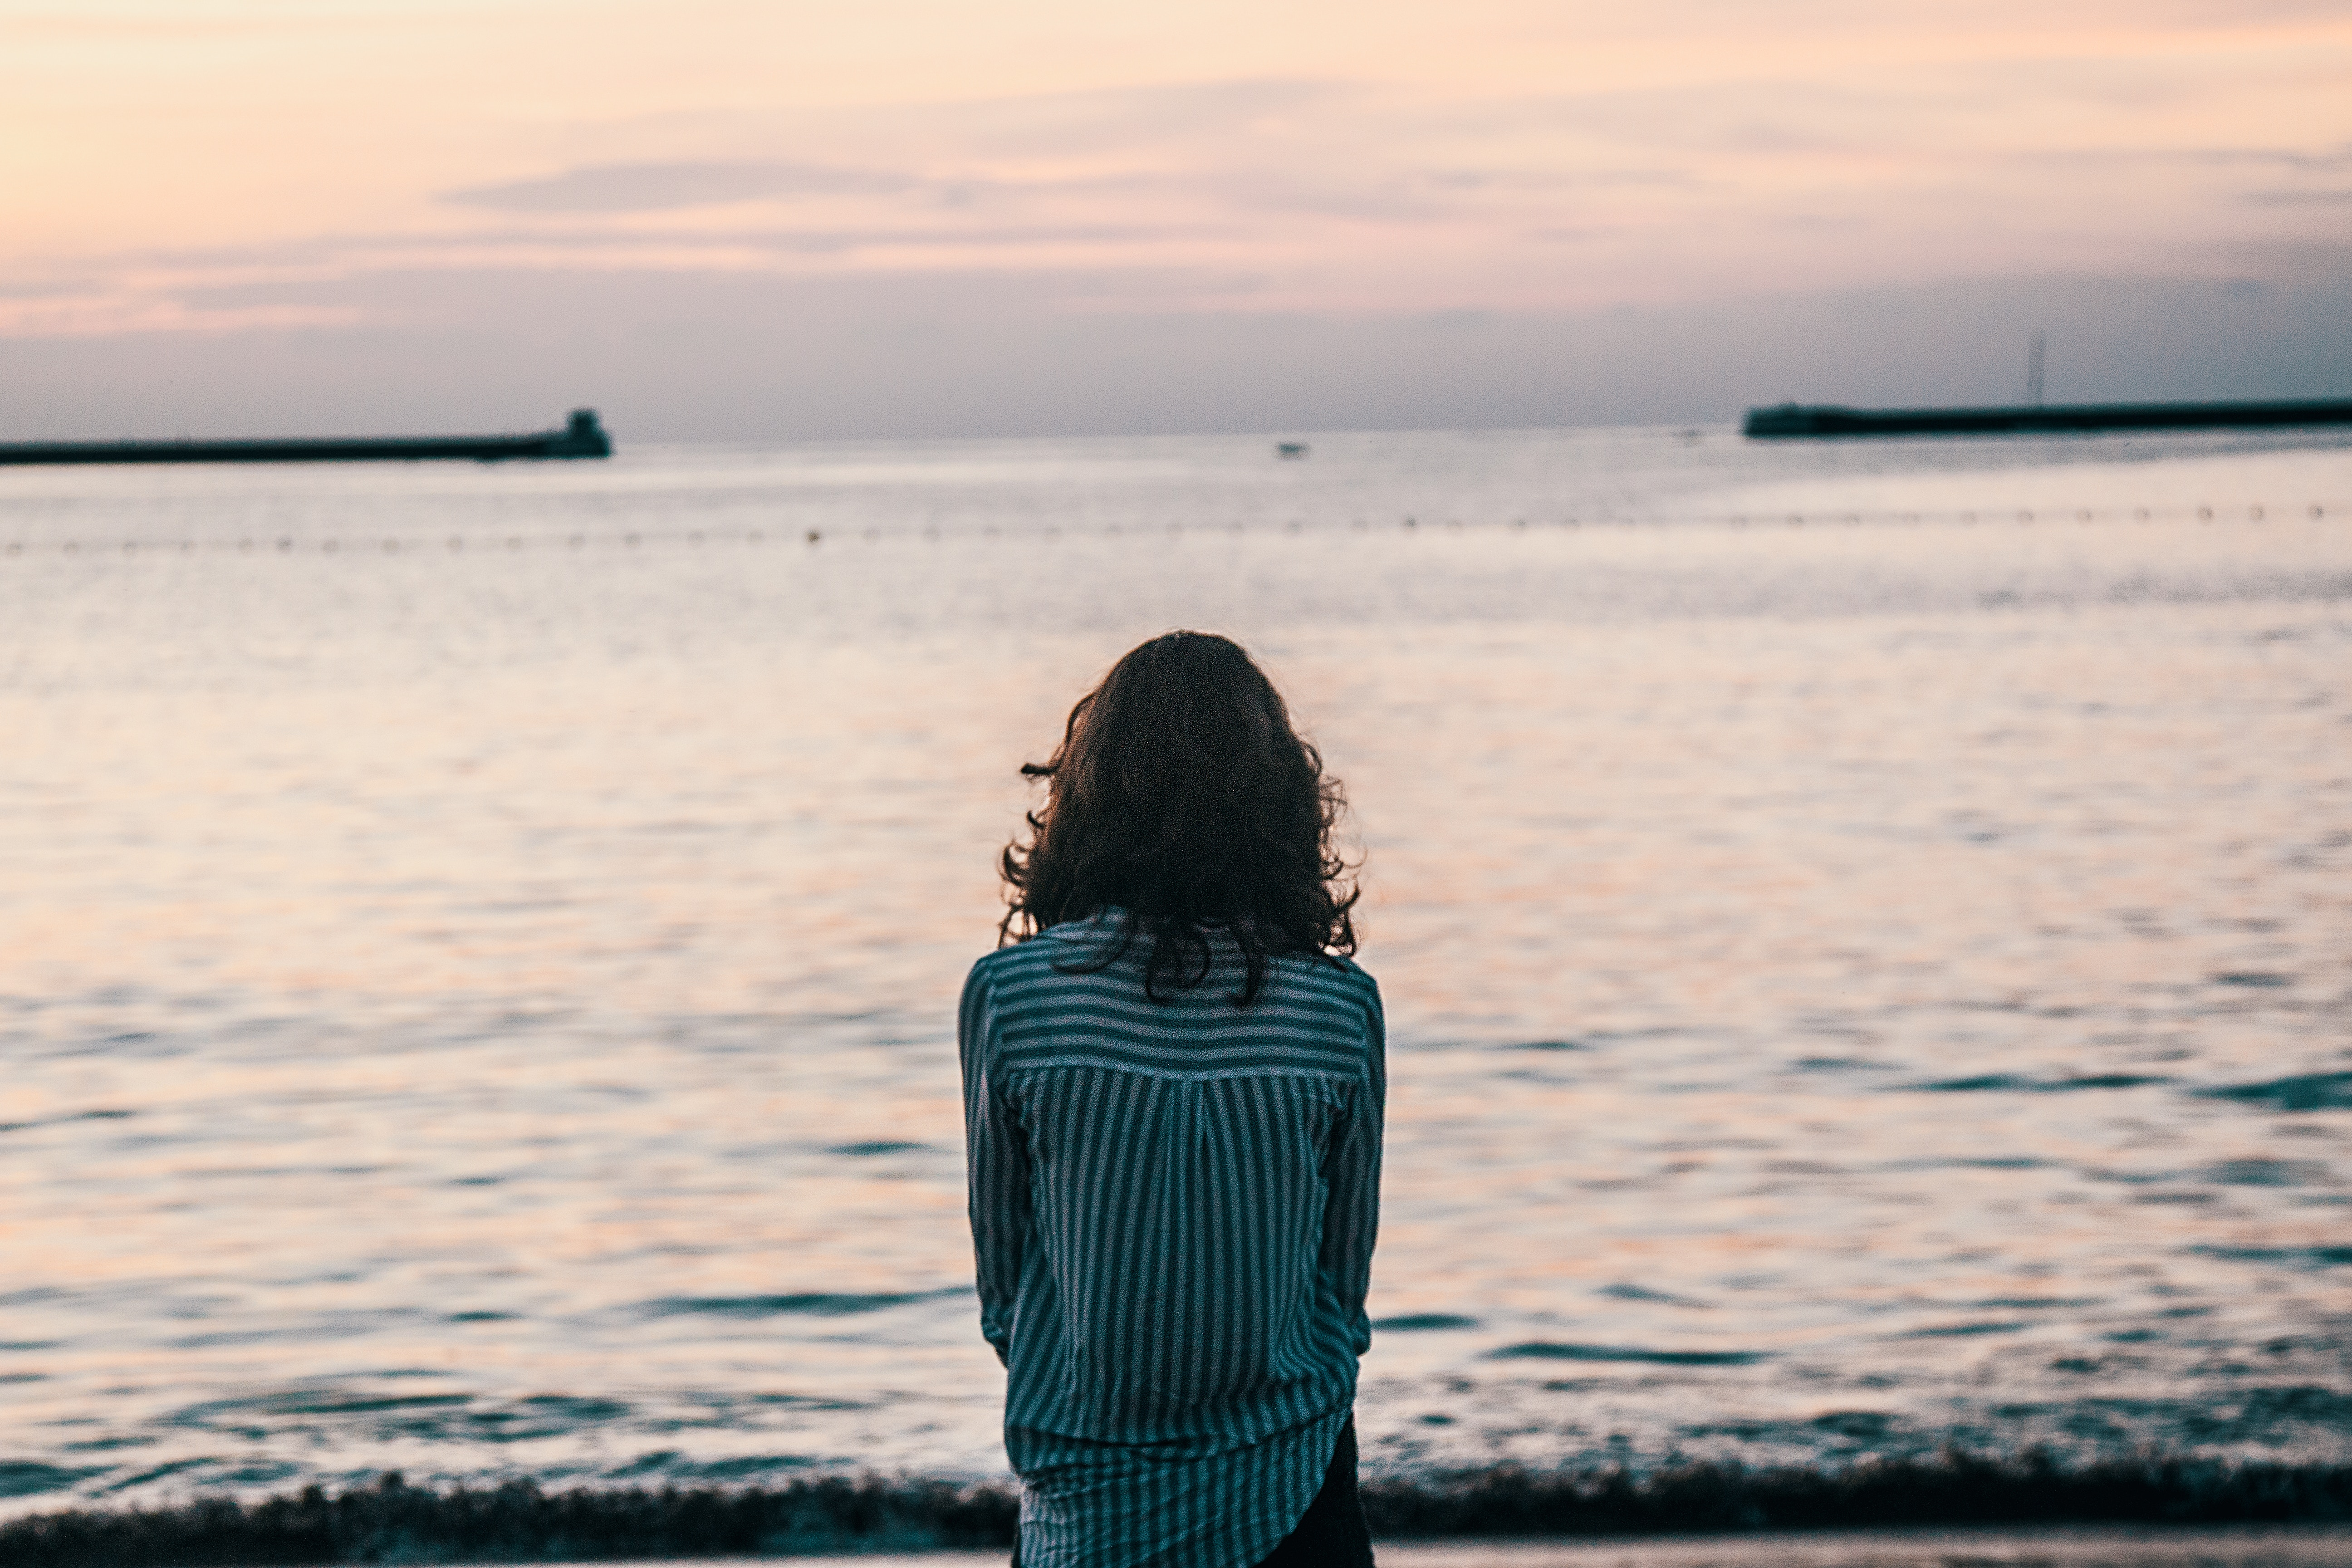 Mindfulness for Resilience in Illness: Parenting With Mindfulness and Self-Kindness